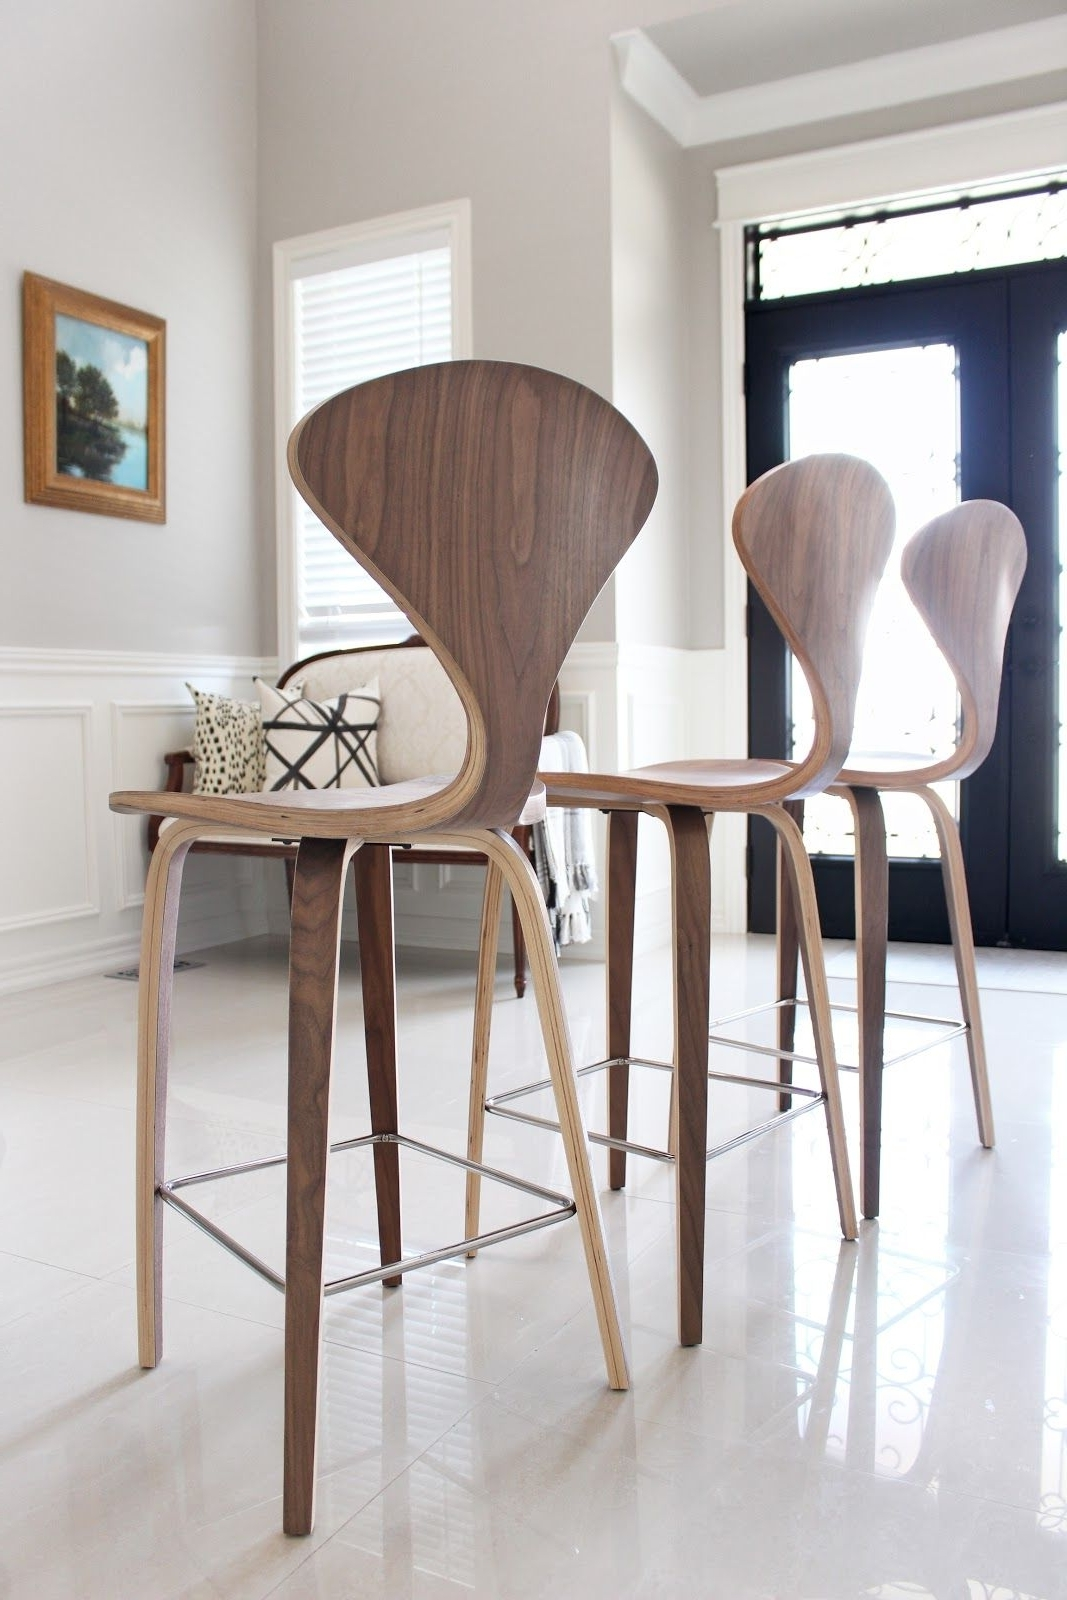 Laurent 7 Piece Counter Sets With Upholstered Counterstools Within Fashionable Norman Cherner Style Counter Stools In Walnut From Rove Concepts (View 8 of 25)